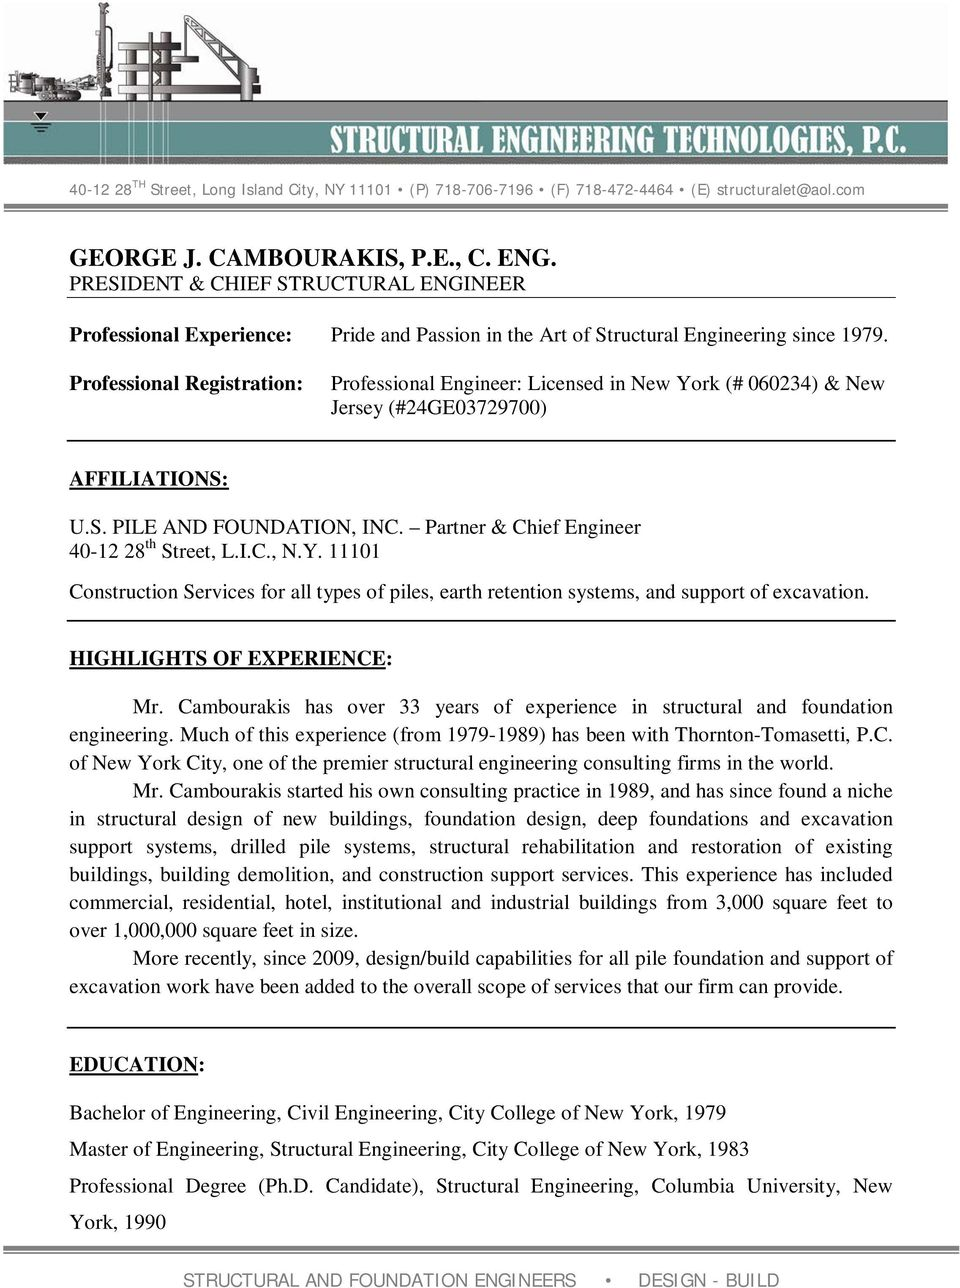 Partner & Chief Engineer 40-12 28 th Street, L.I.C., N.Y. 11101 Construction Services for all types of piles, earth retention systems, and support of excavation. HIGHLIGHTS OF EXPERIENCE: Mr.